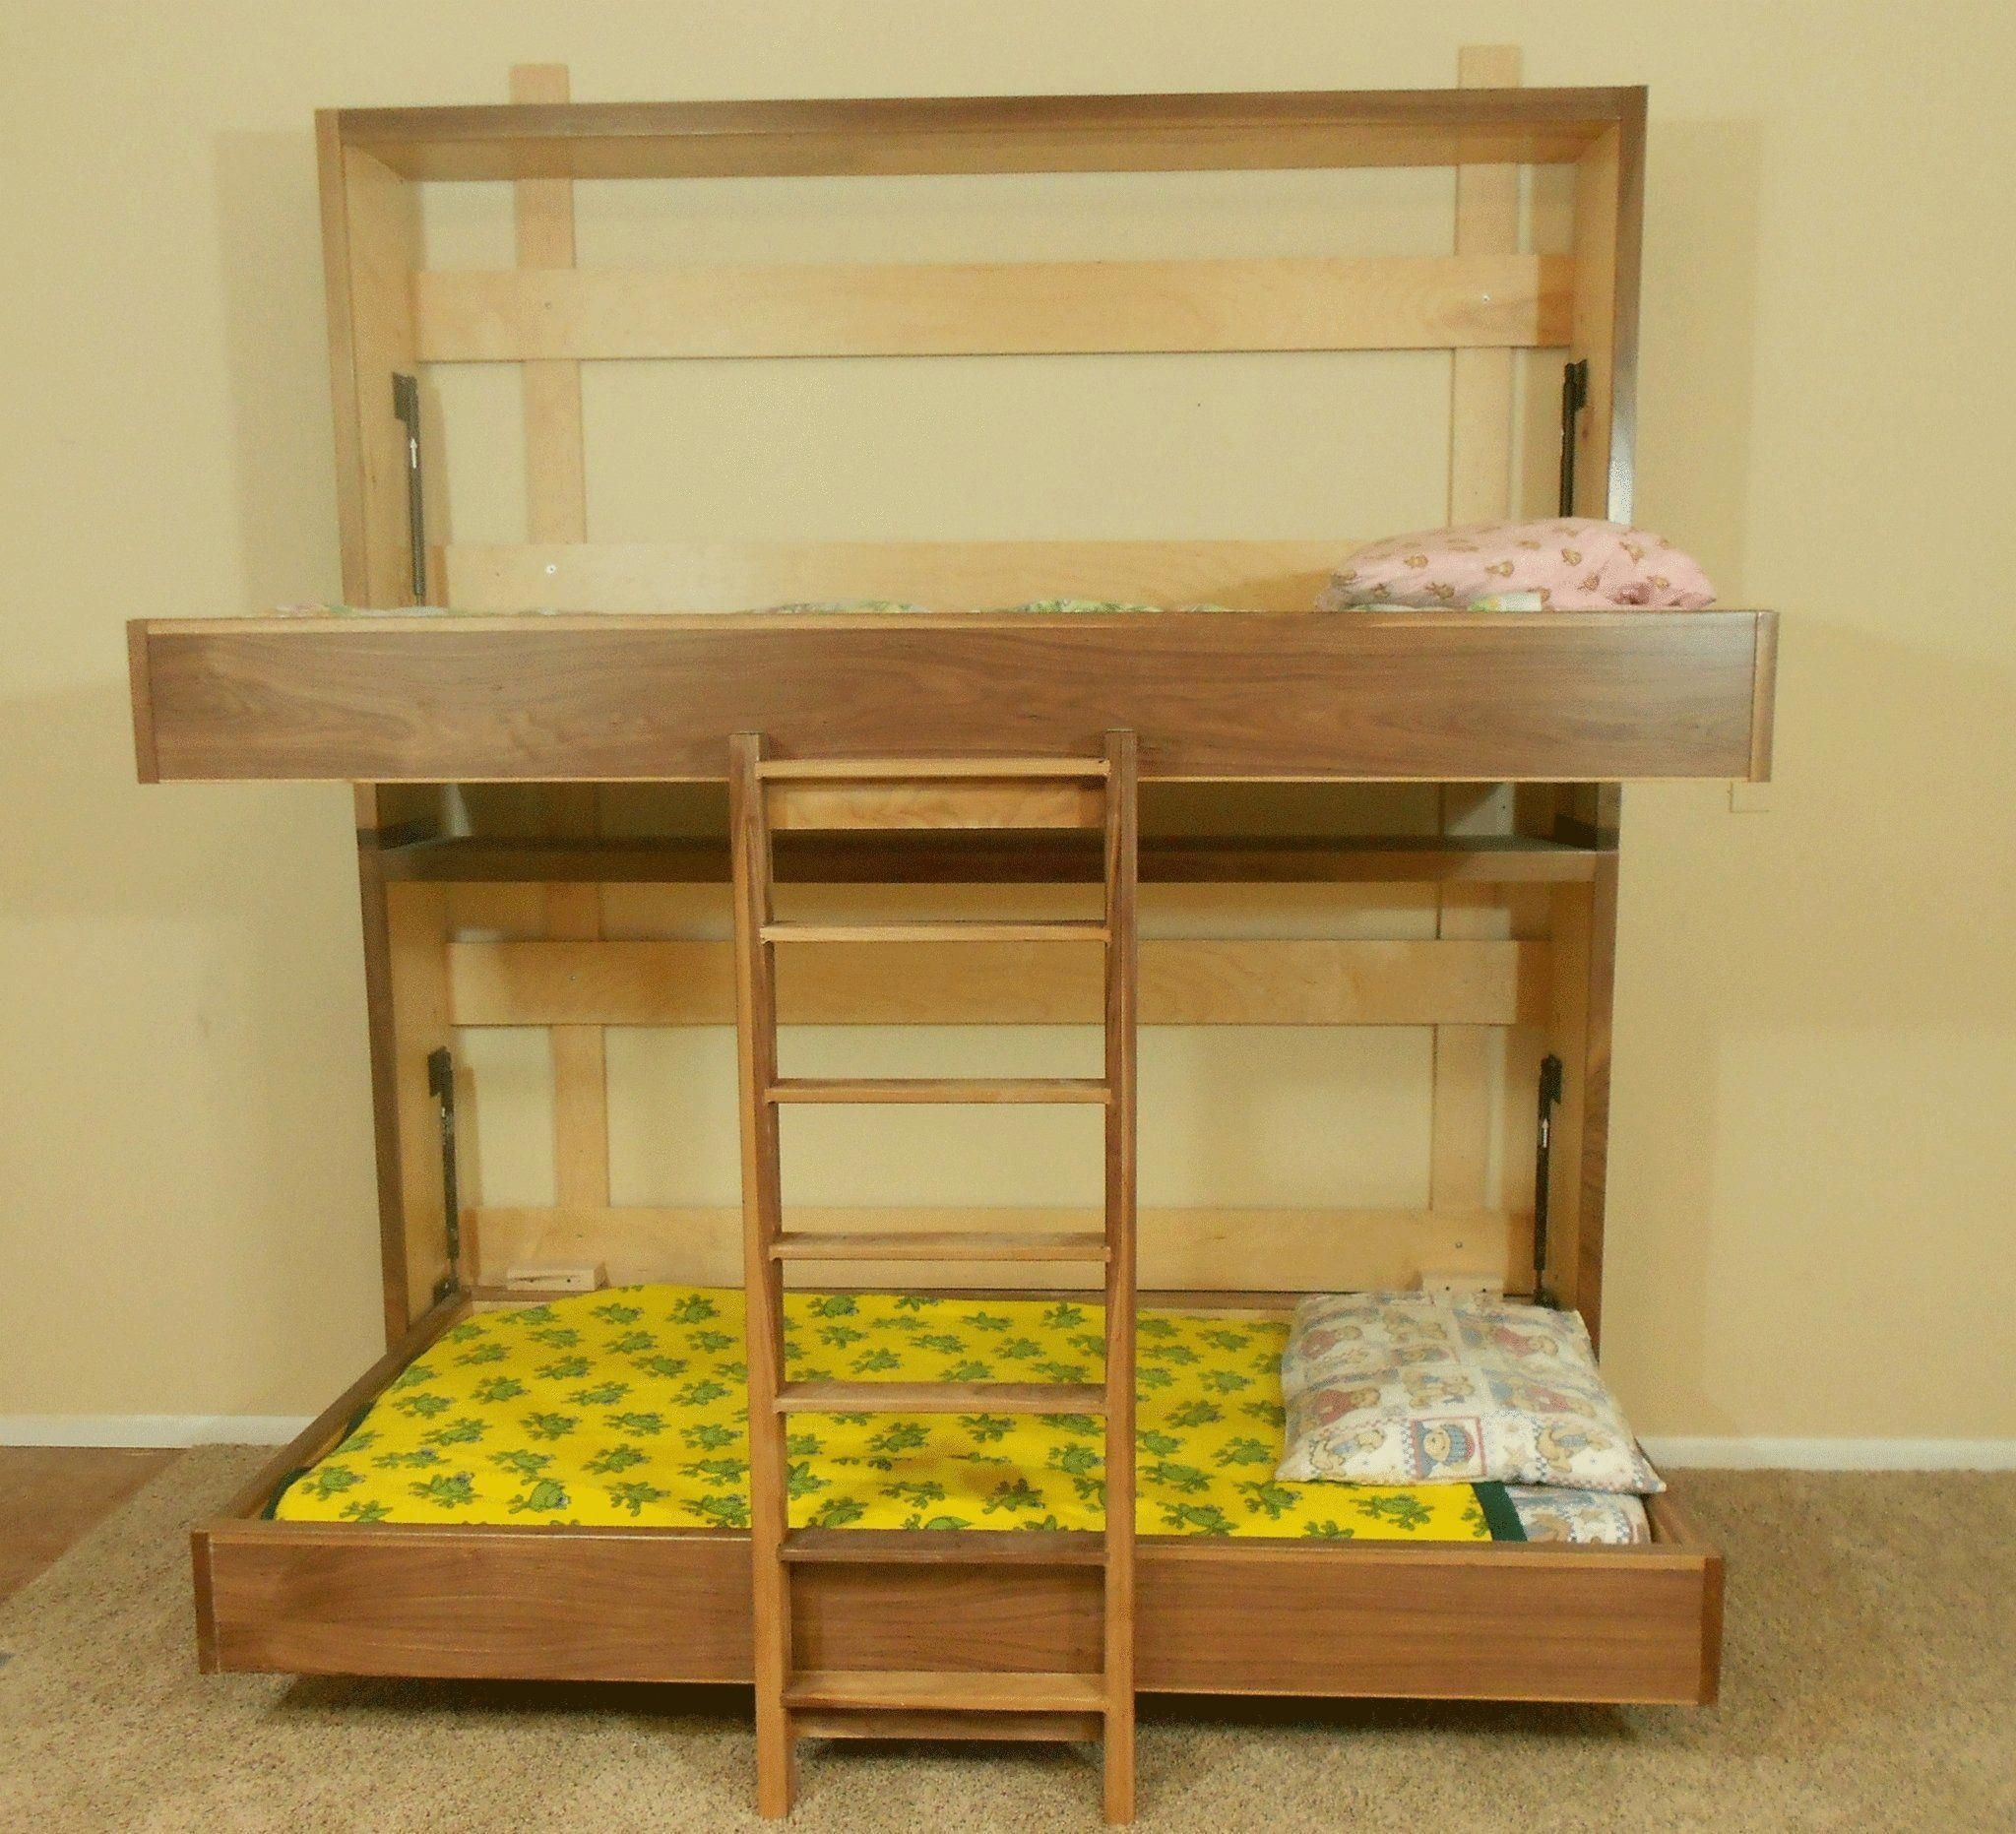 Loft bed with slide out desk  Image of Murphy Bunk Beds Diy Bunkbeds Design Ideas How To Make